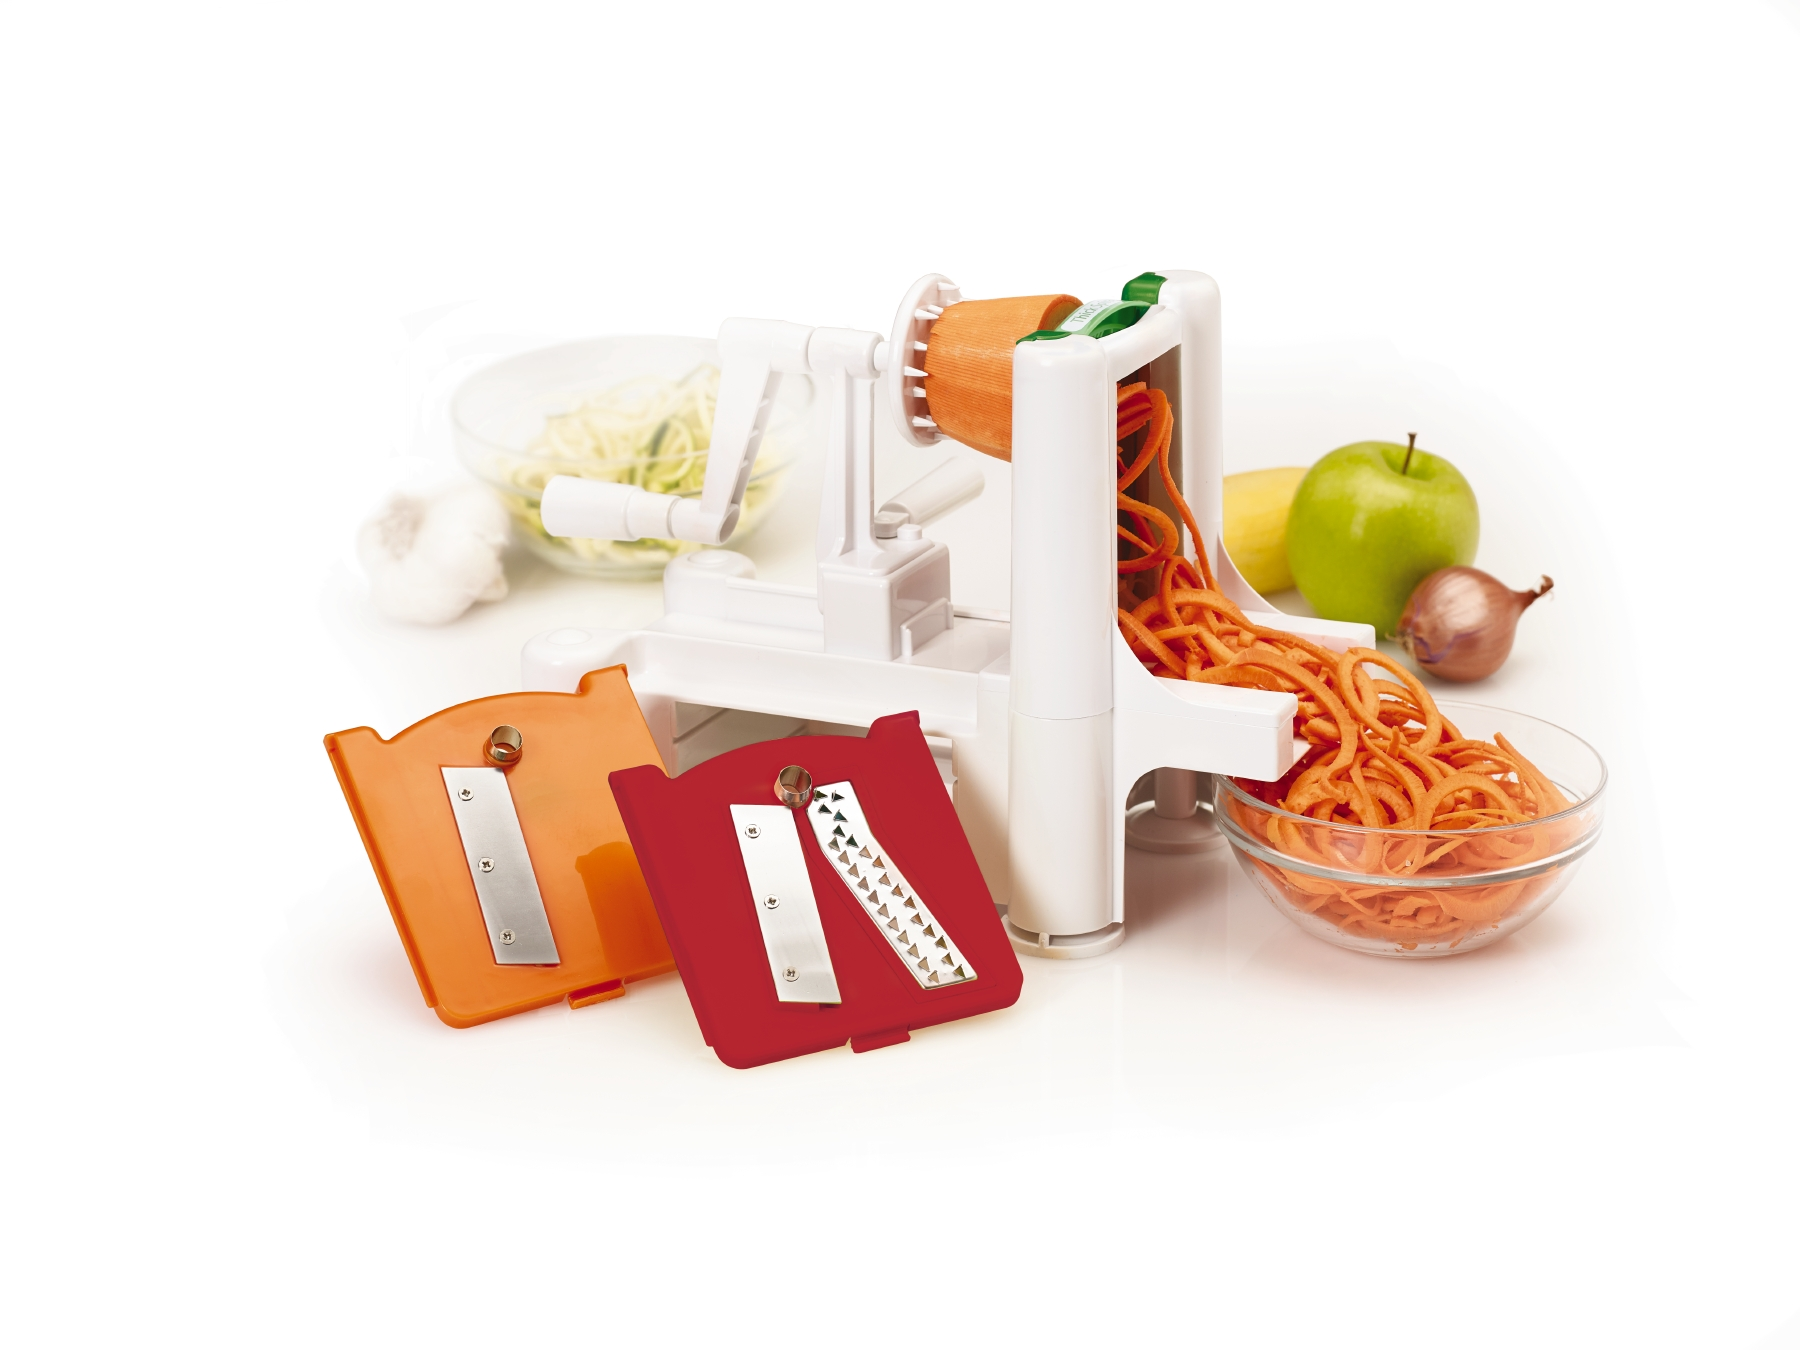 Farberware Spiraletti Fruit and Vegetable Slicer